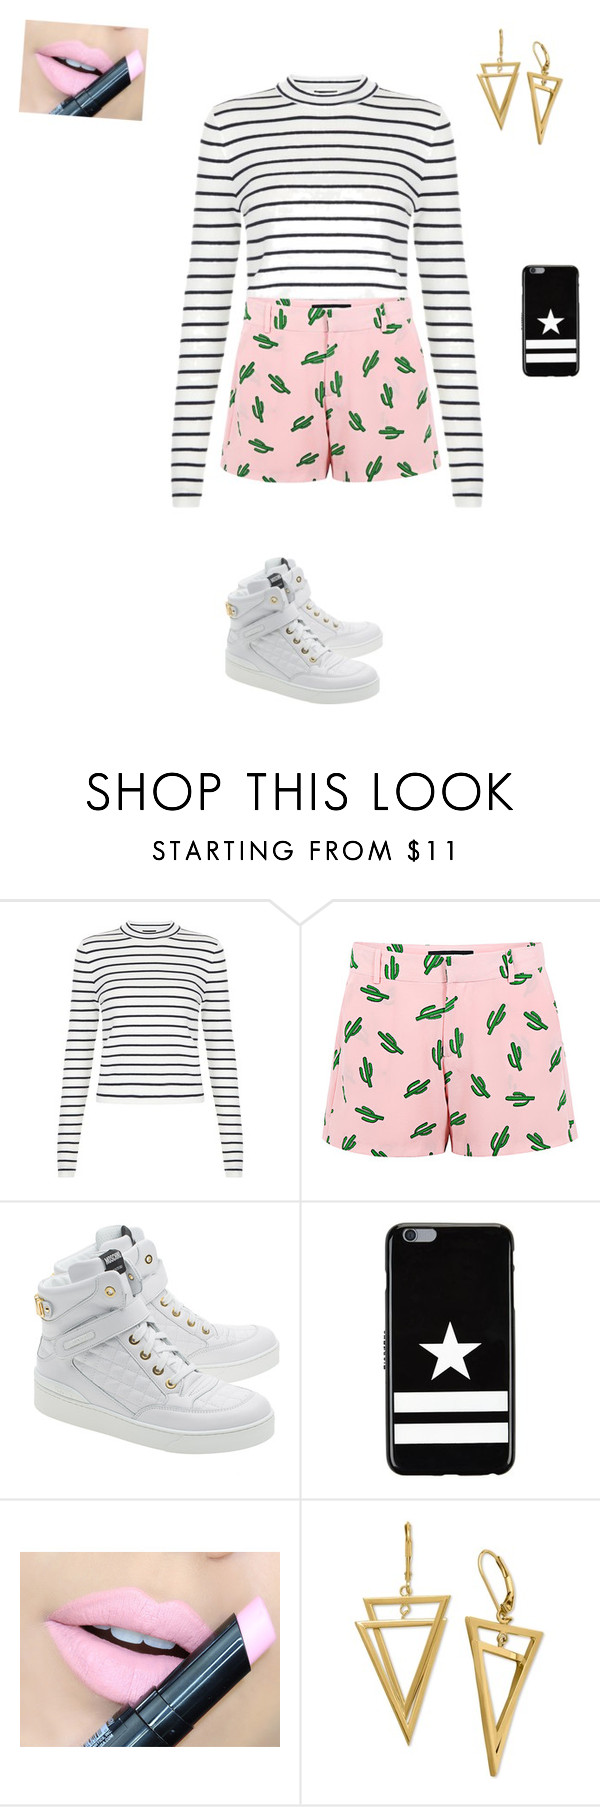 """""""Too painful"""" by myghostbusters ❤ liked on Polyvore featuring American Retro, Moschino, Givenchy, Fiebiger, women's clothing, women, female, woman, misses and juniors"""